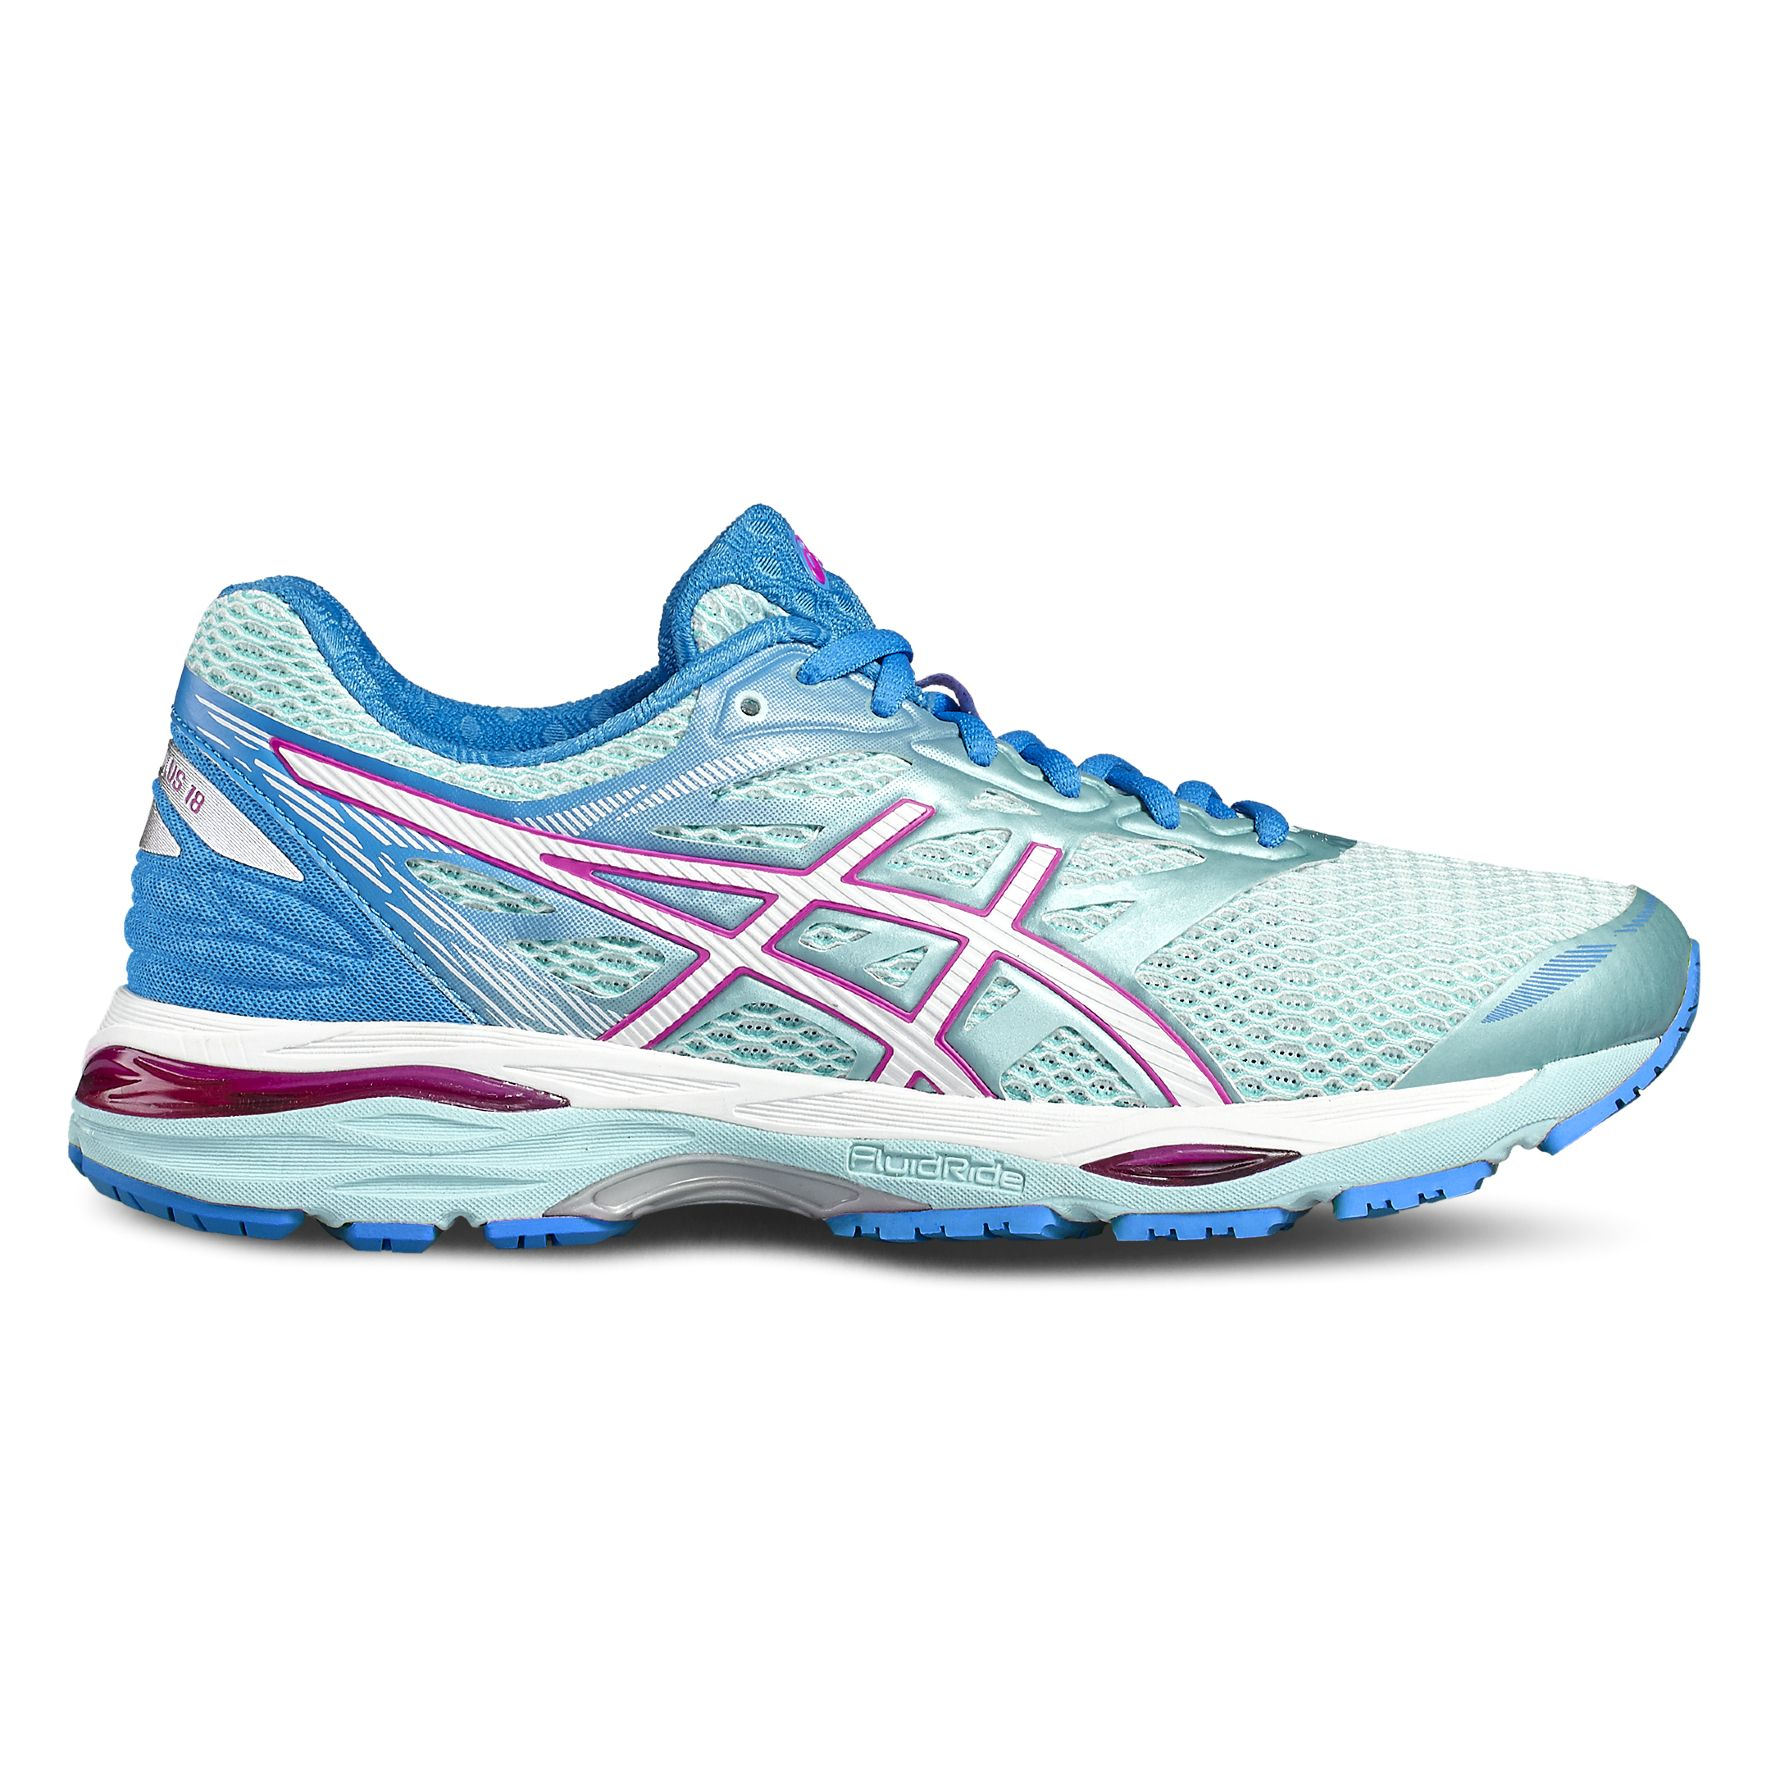 Asics Ladies Running Shoes Size